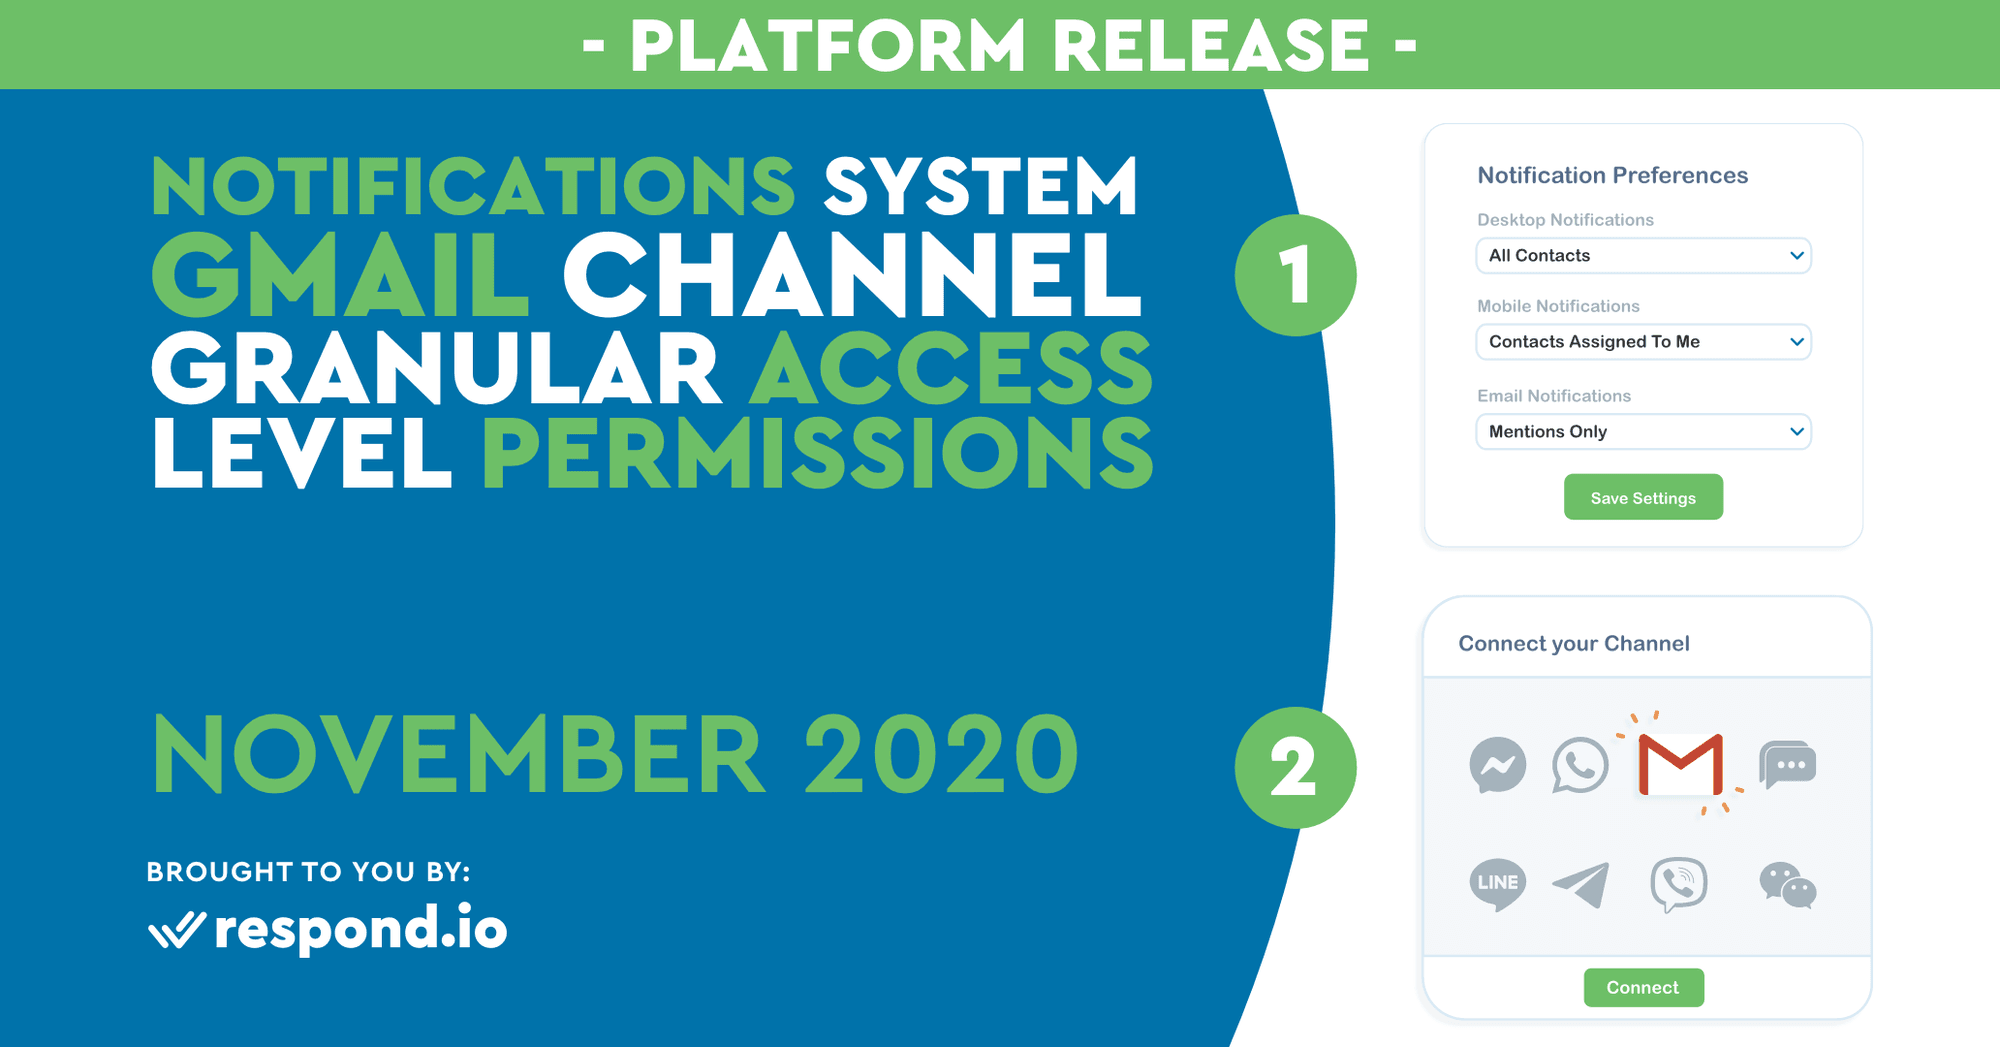 The November 2020 Release - New Notification System, G Suite Channel Integration & Access Level Changes